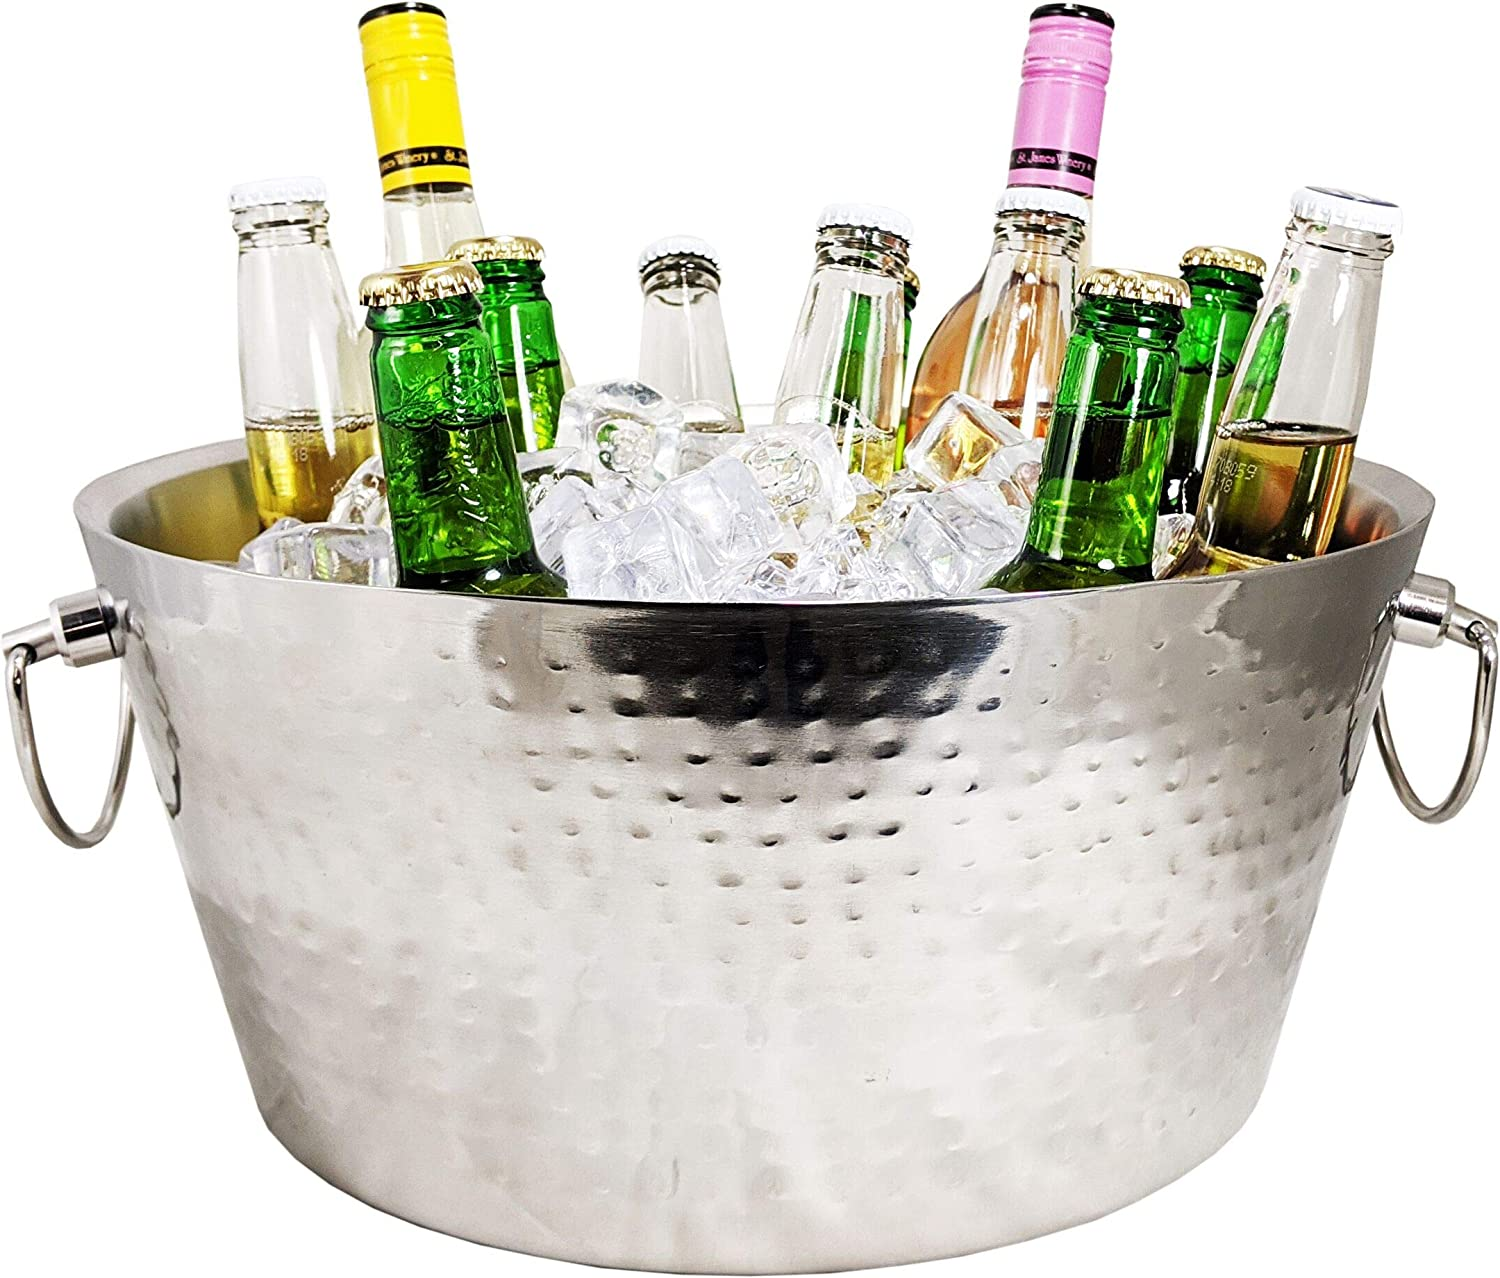 BREKX Hammered Stainless-Steel Double-Walled Insulated Anchored Drink Tub & Ice Bucket with Double Hinged Handles, Drink Chiller for Parties, with Double Hinged Handles, 12 Quarts